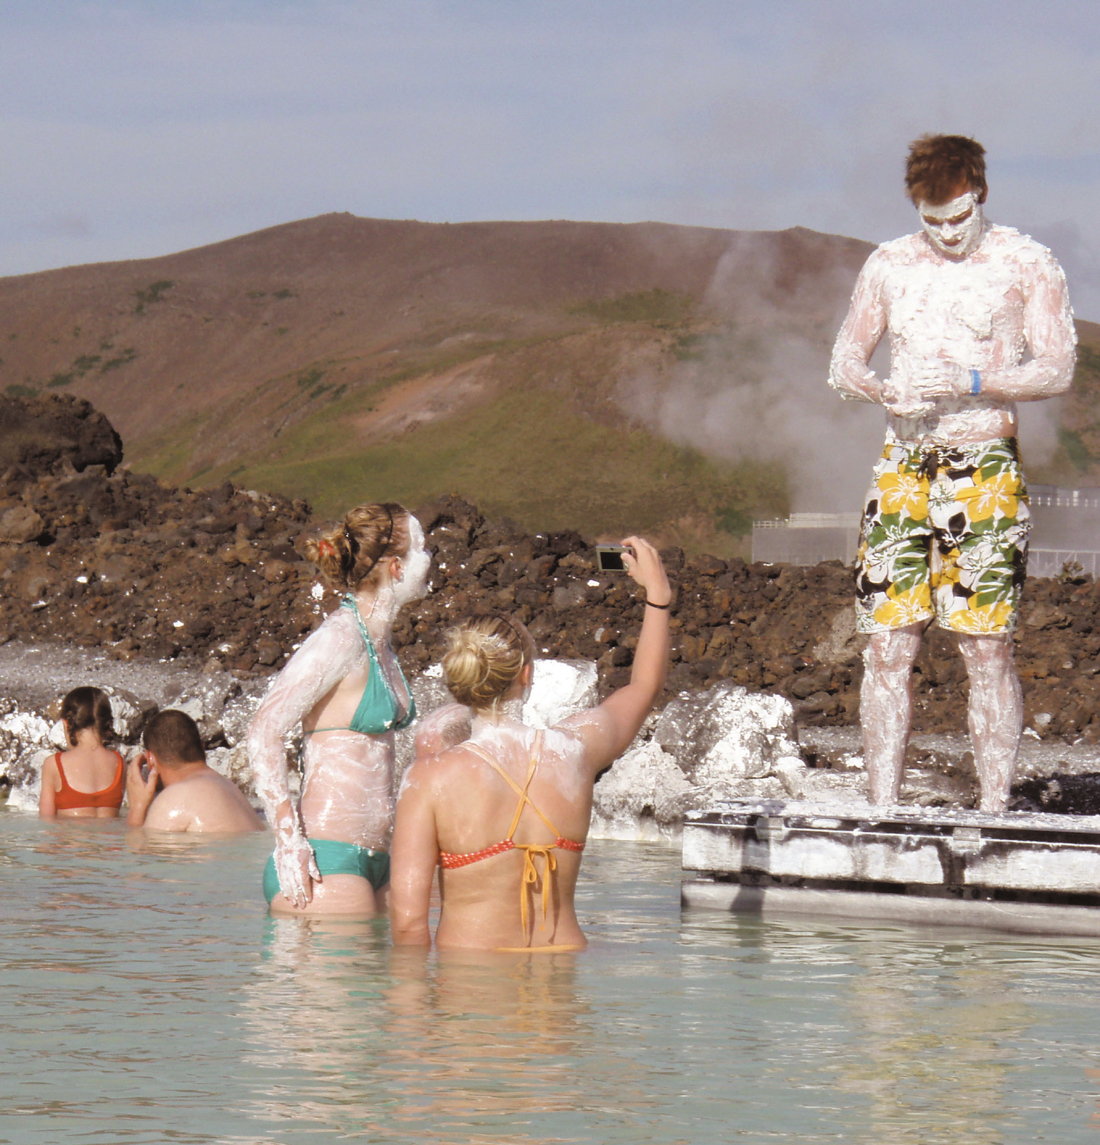 Visitors take in a mud bath and a photo at the Blue Lagoon in Iceland.